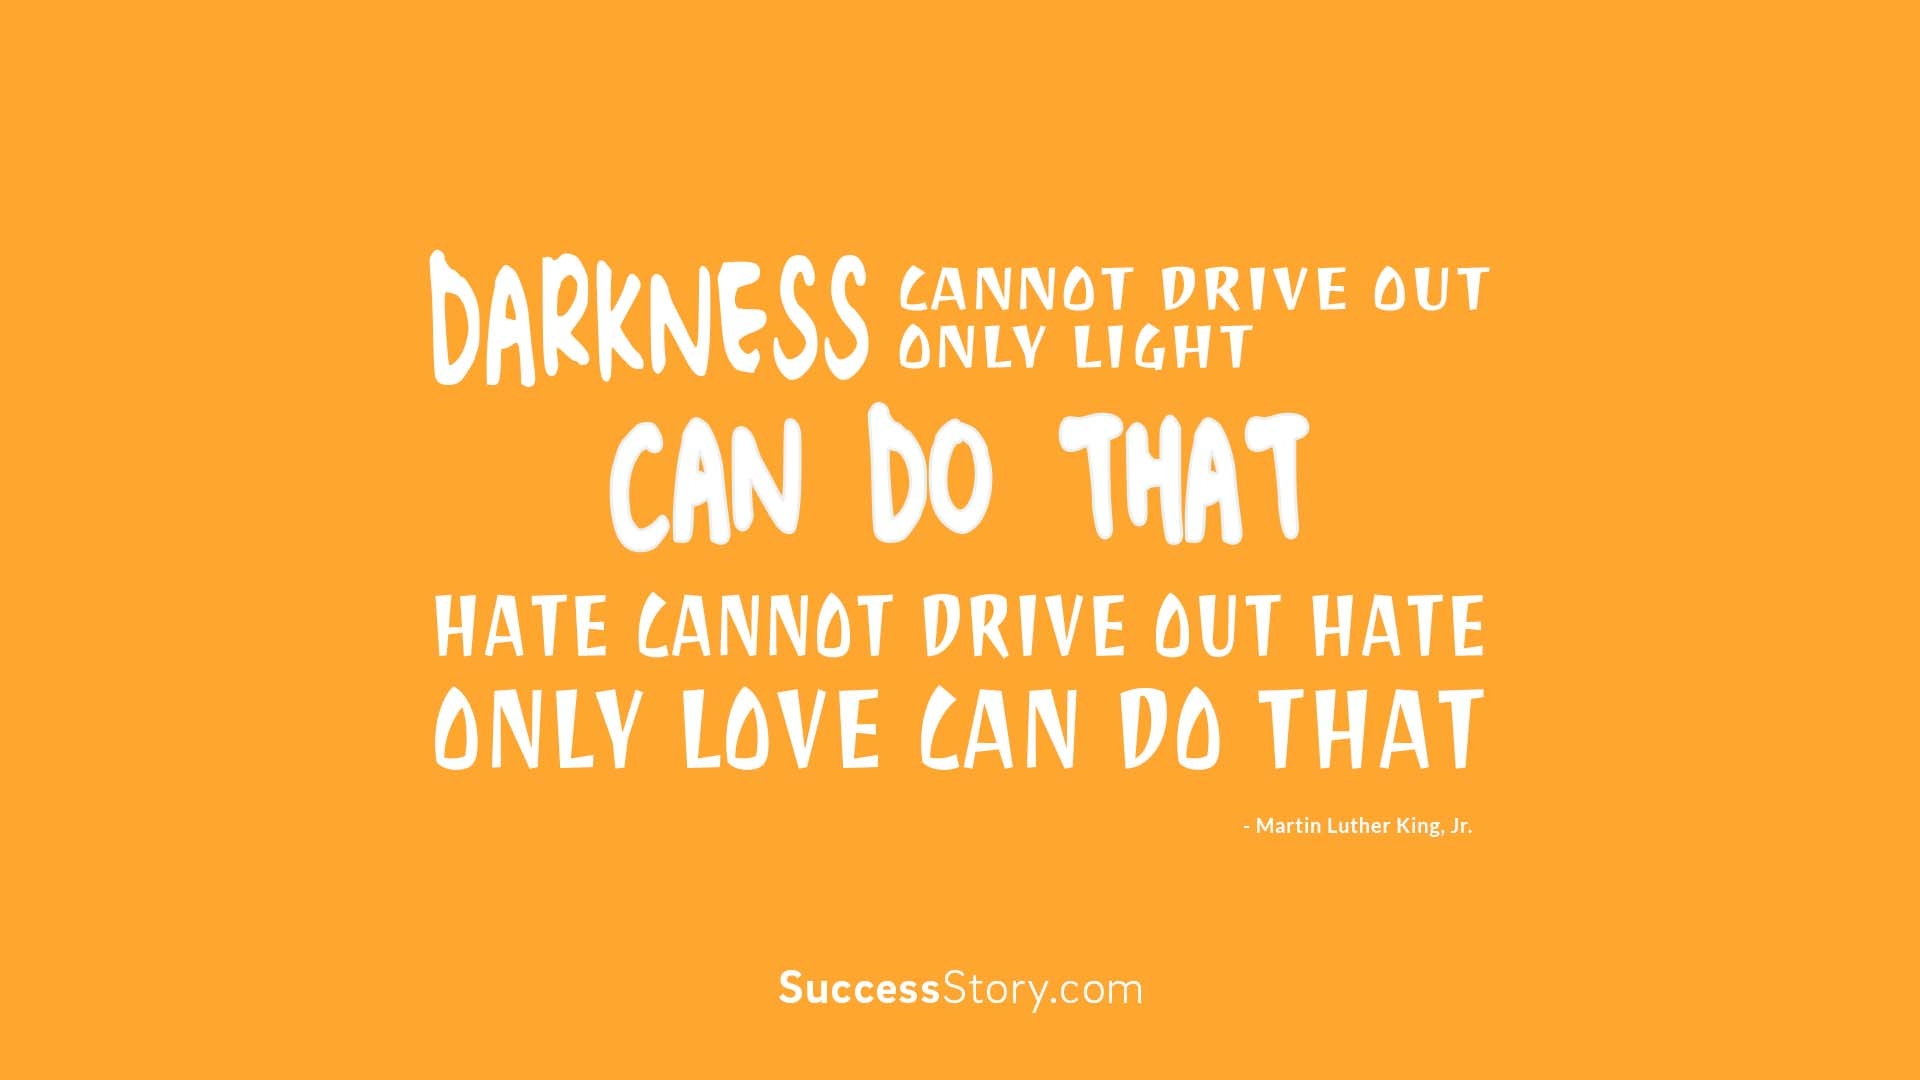 Darkness cannot drive out darkness  1